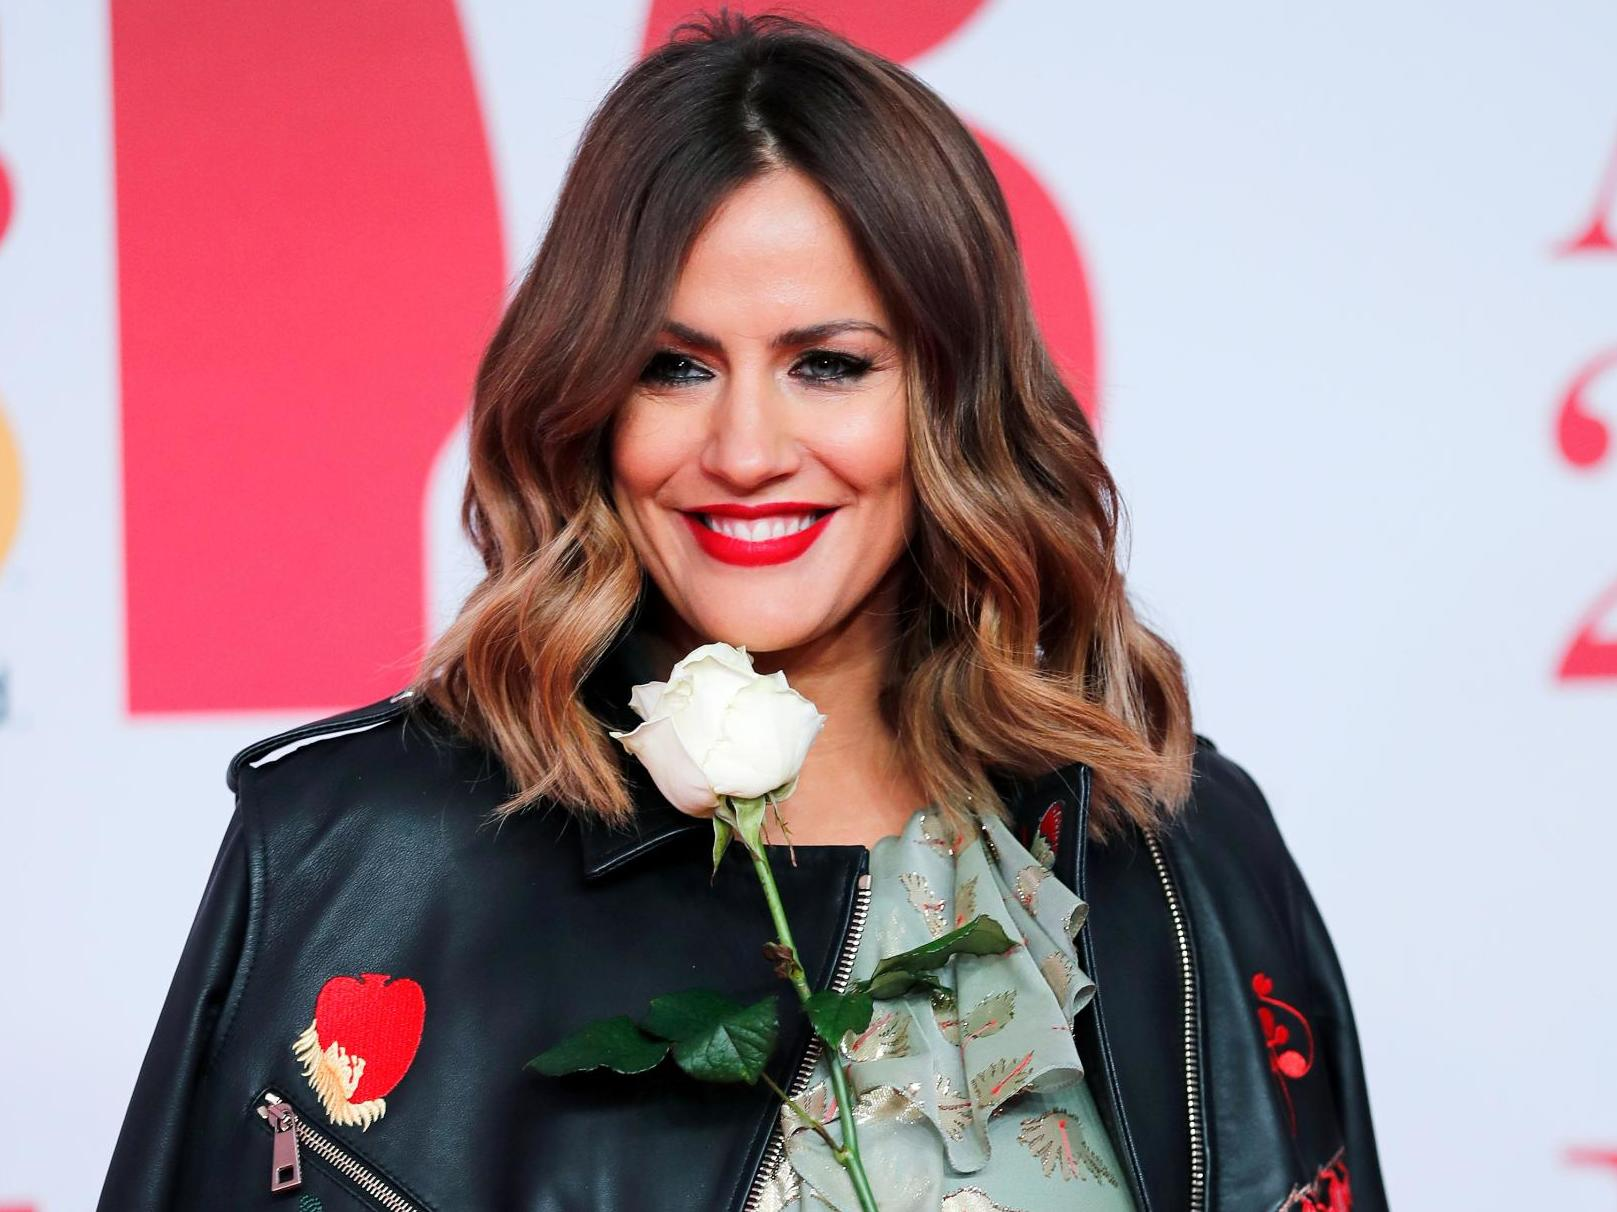 Opinion: Why cases like Caroline Flack's don't always rely on statements from domestic violence victims